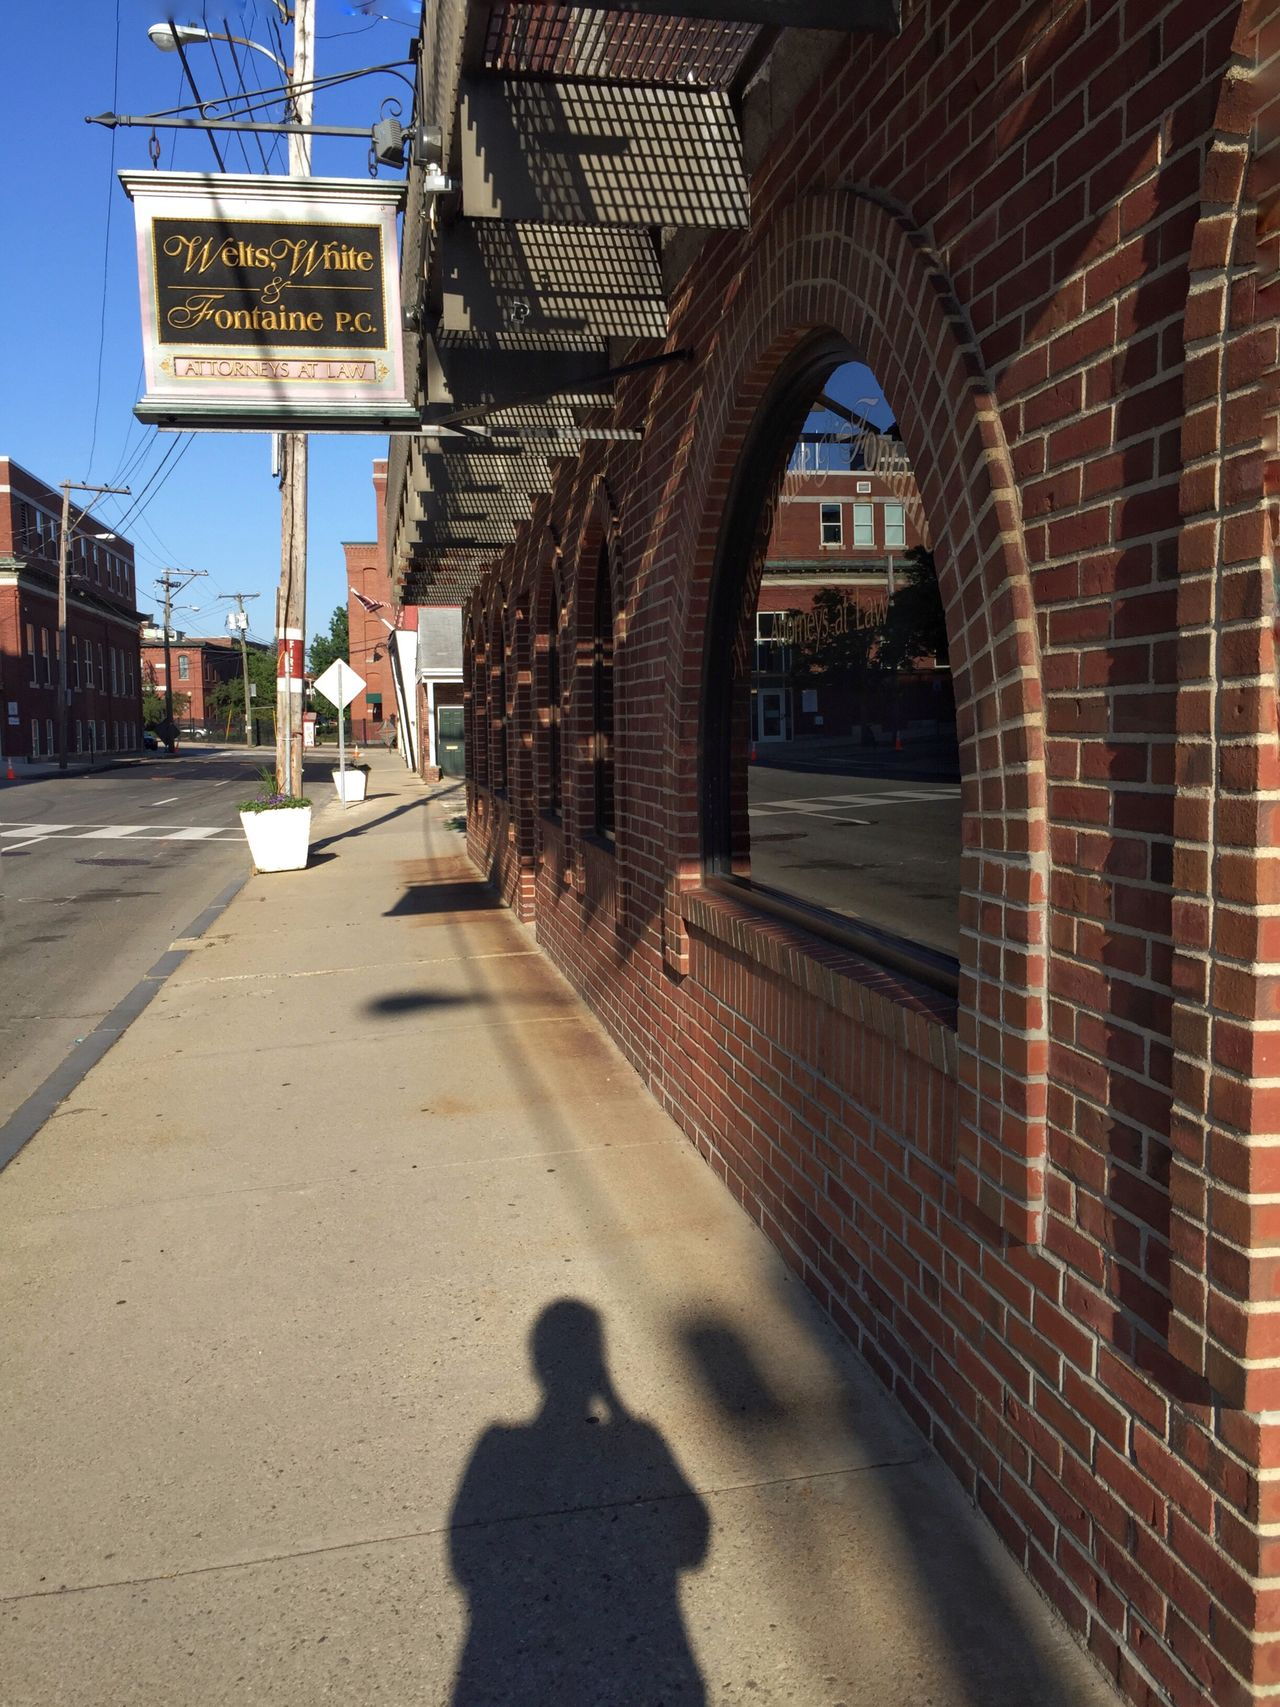 The reelection, the arched windows, and the photographer. Streetphotography Windows Arched Windows Brick Building Reflection Shadow IPhoneography Nashua Taking Photos Morning Walk